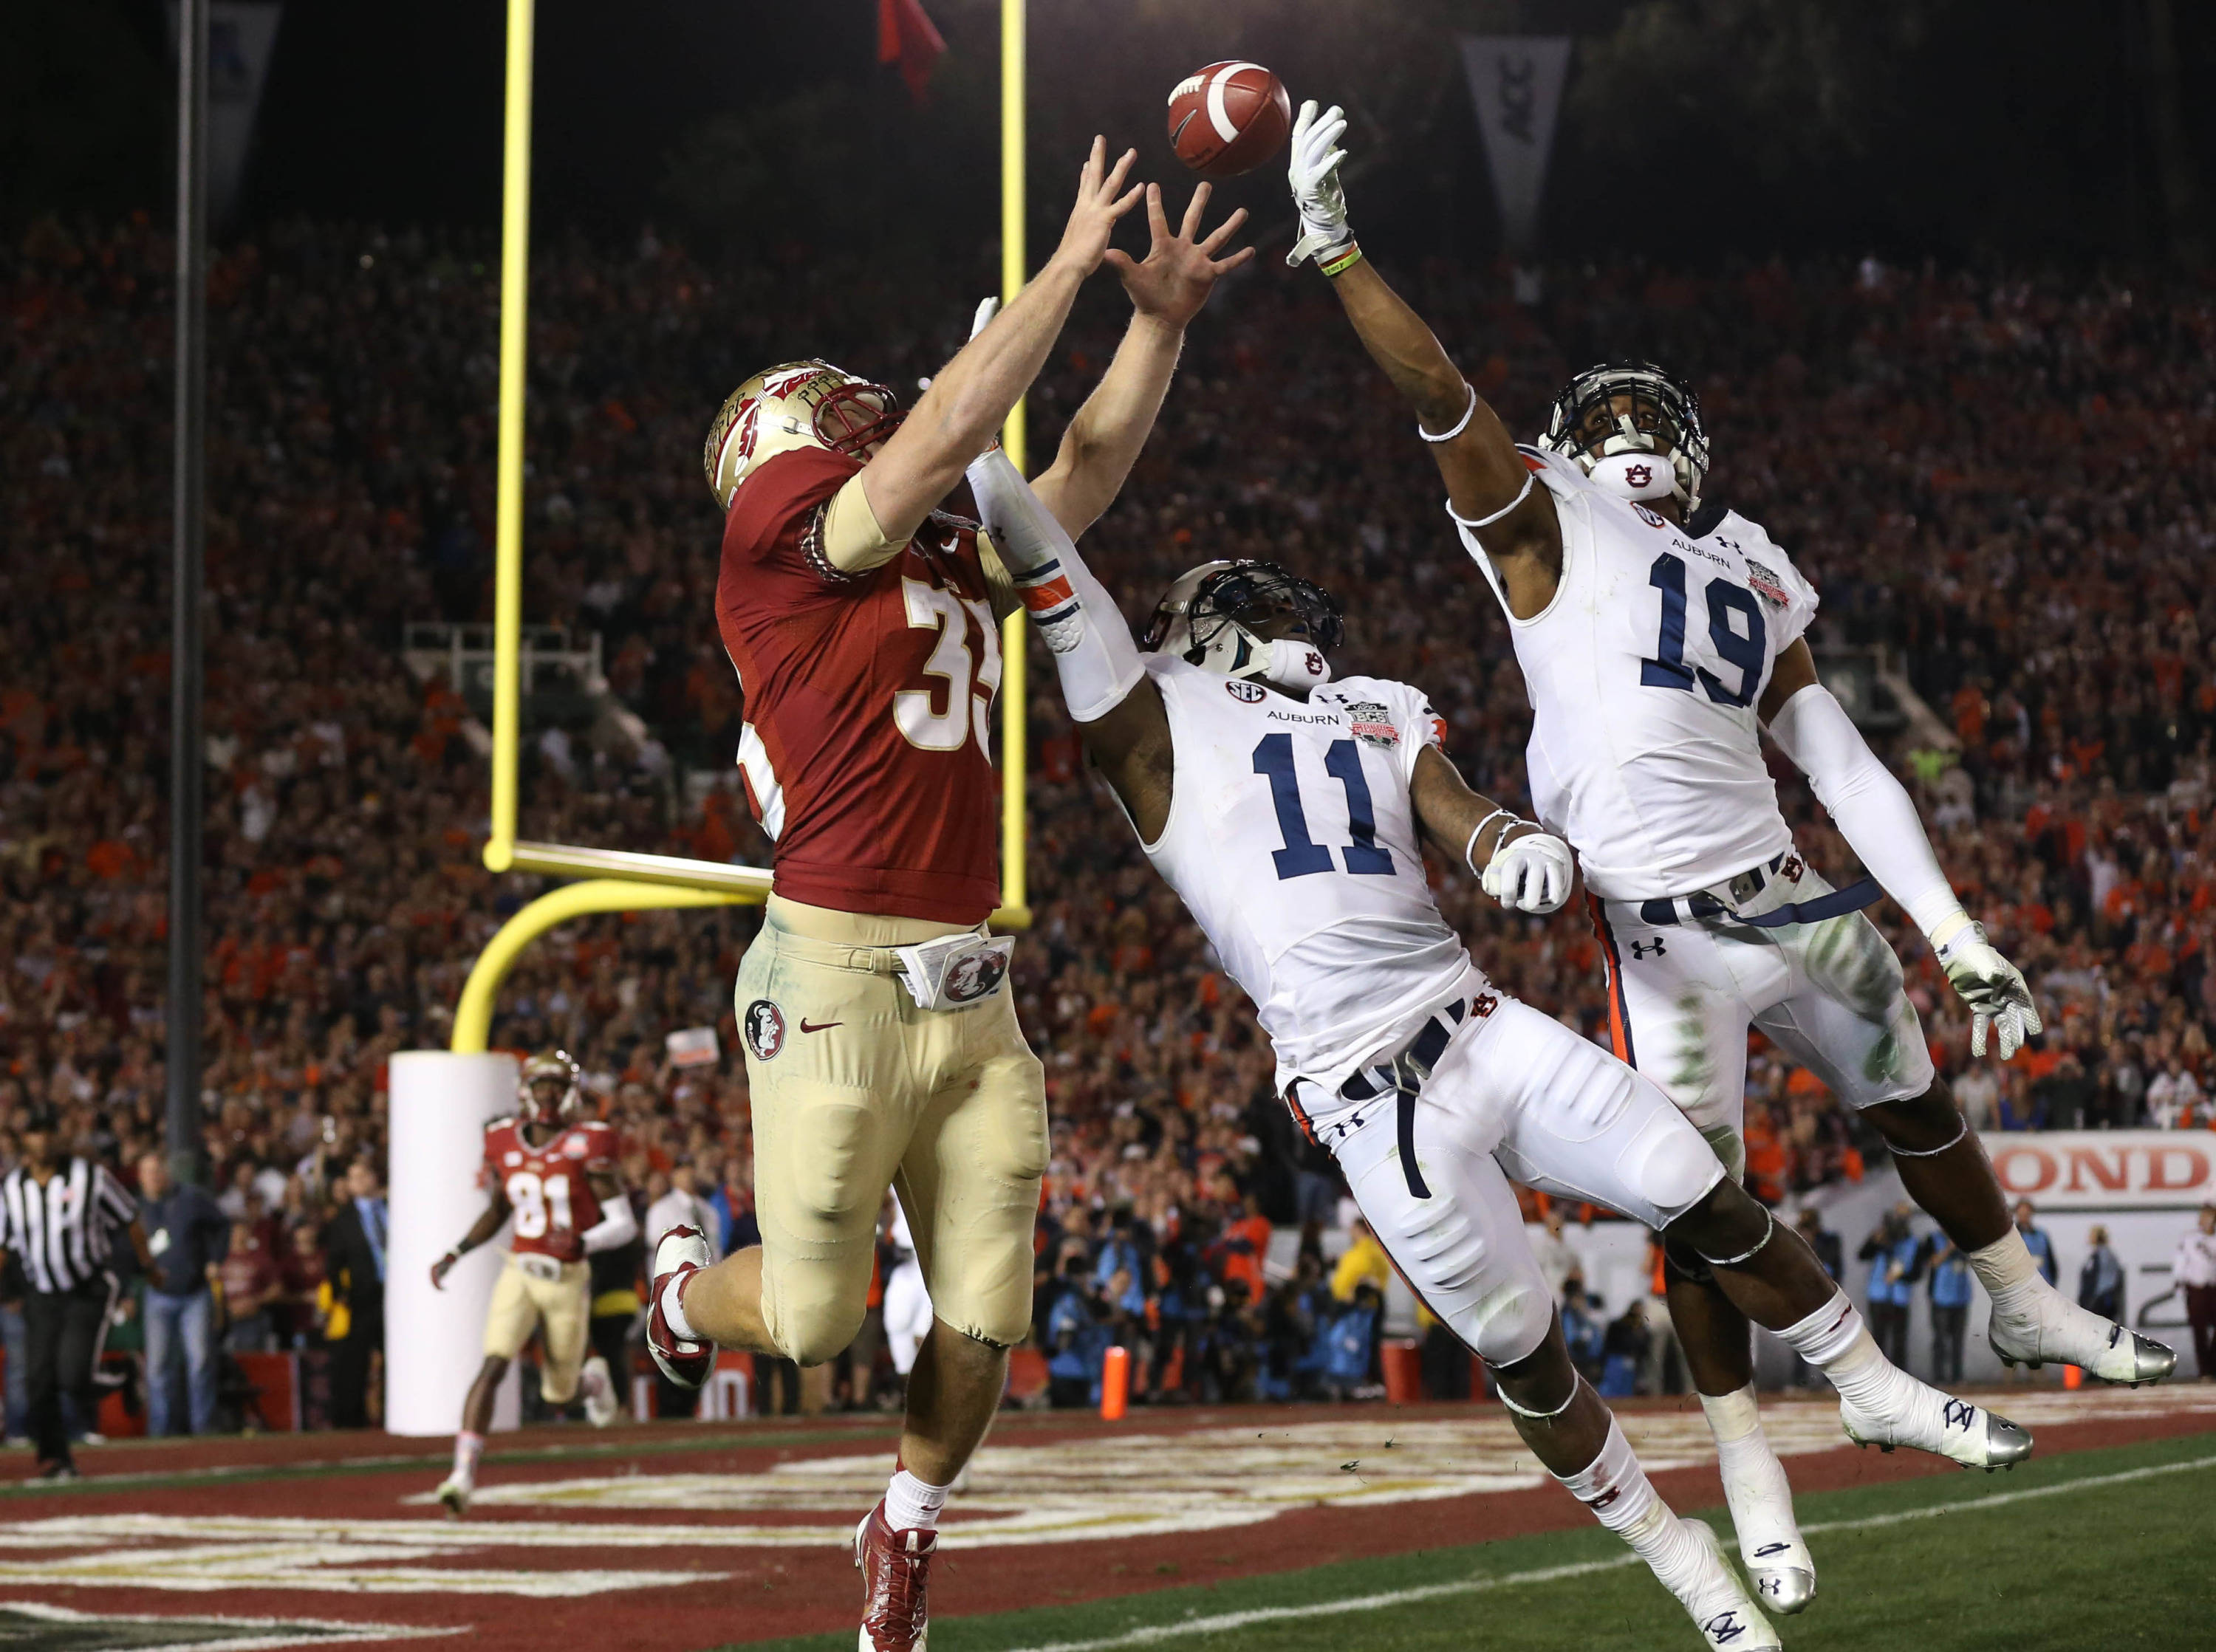 Jan 6, 2014; Pasadena, CA, USA; Auburn Tigers cornerback Chris Davis (11) and Ryan White  (19) break up a pass for Florida State Seminoles tight end Nick O'Leary (35) during the first half of the 2014 BCS National Championship game at the Rose Bowl.  Mandatory Credit: Matthew Emmons-USA TODAY Sports